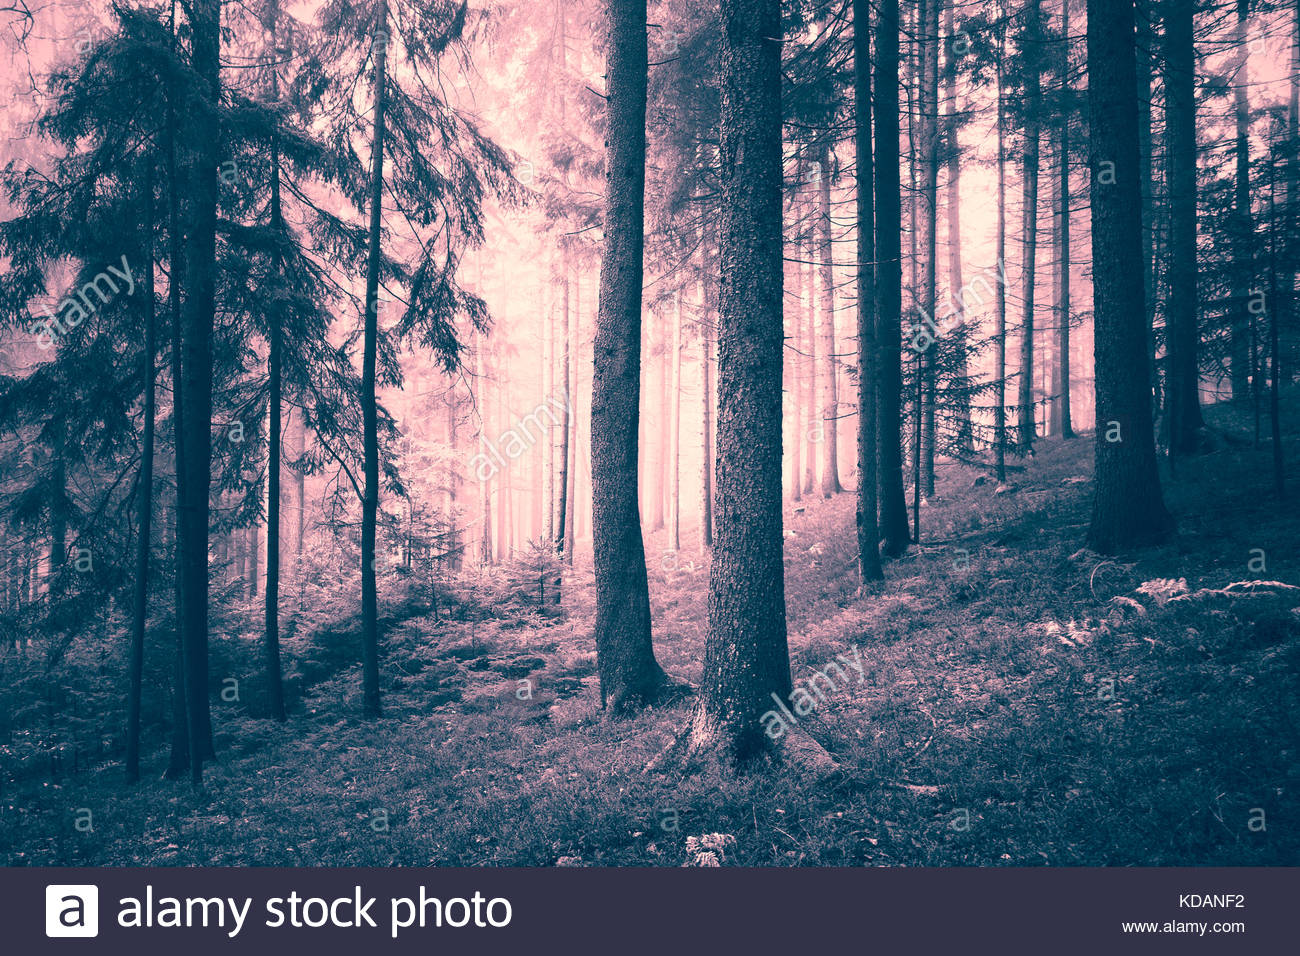 Beautiful pink colored dreamy conifer forest. Color filter effect used. - Stock Image